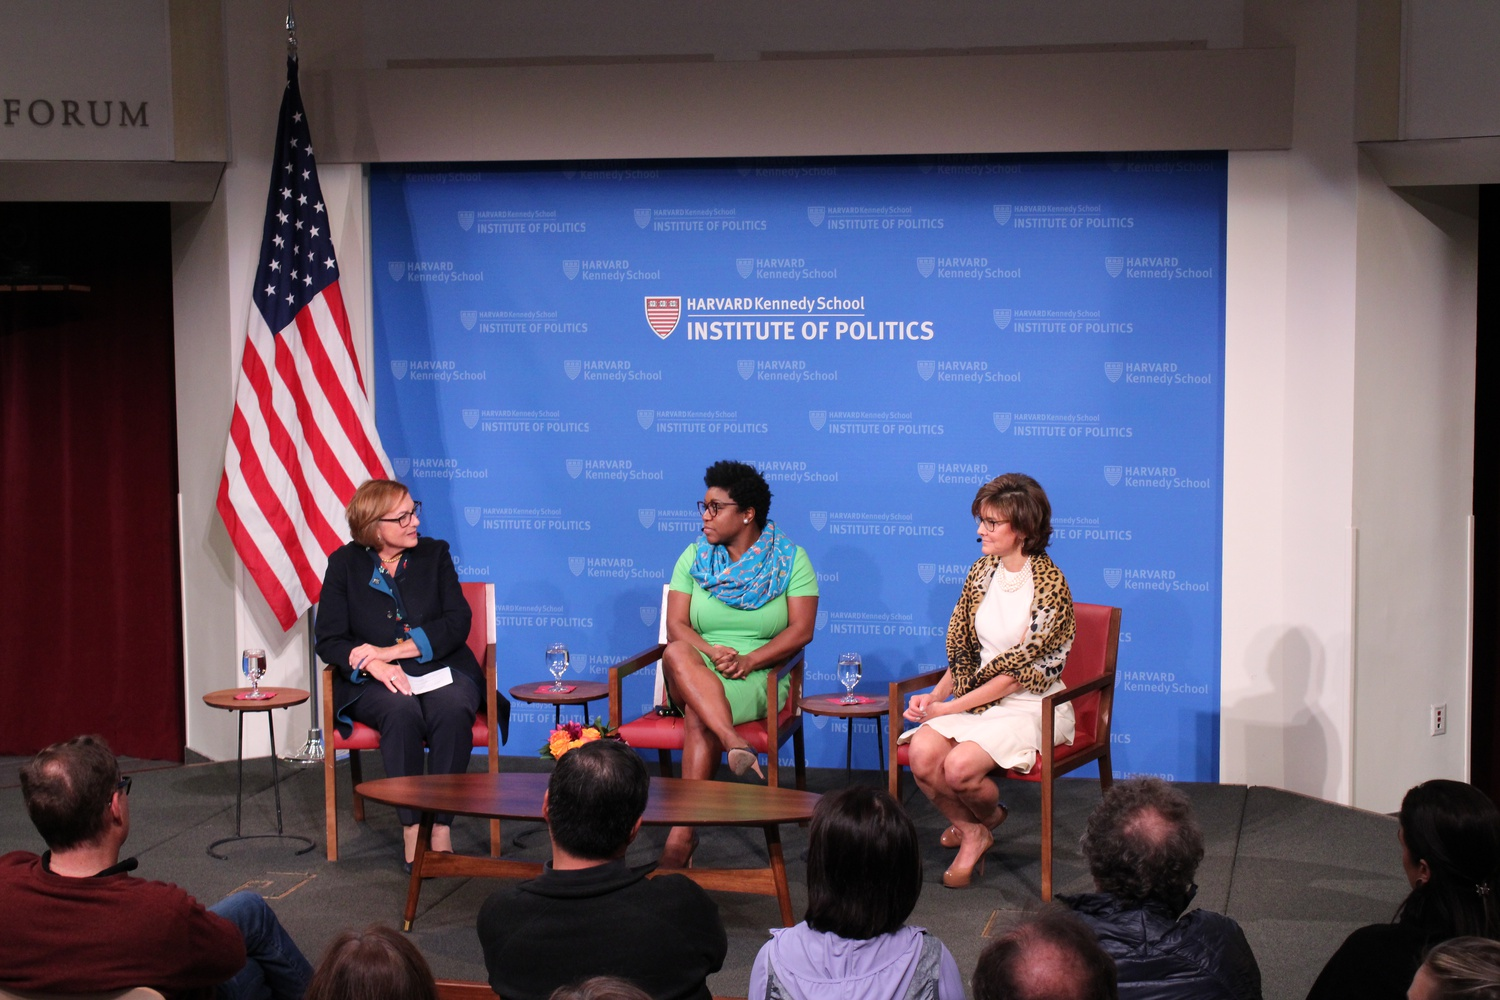 Former White House Social Social Secretary Deesha Dyer and former Chief of Protocol of the United States Capricia P. Marshall speak at the JFK Jr. Forum with moderator Jackie O'Neill, a former Harvard University Marshal.